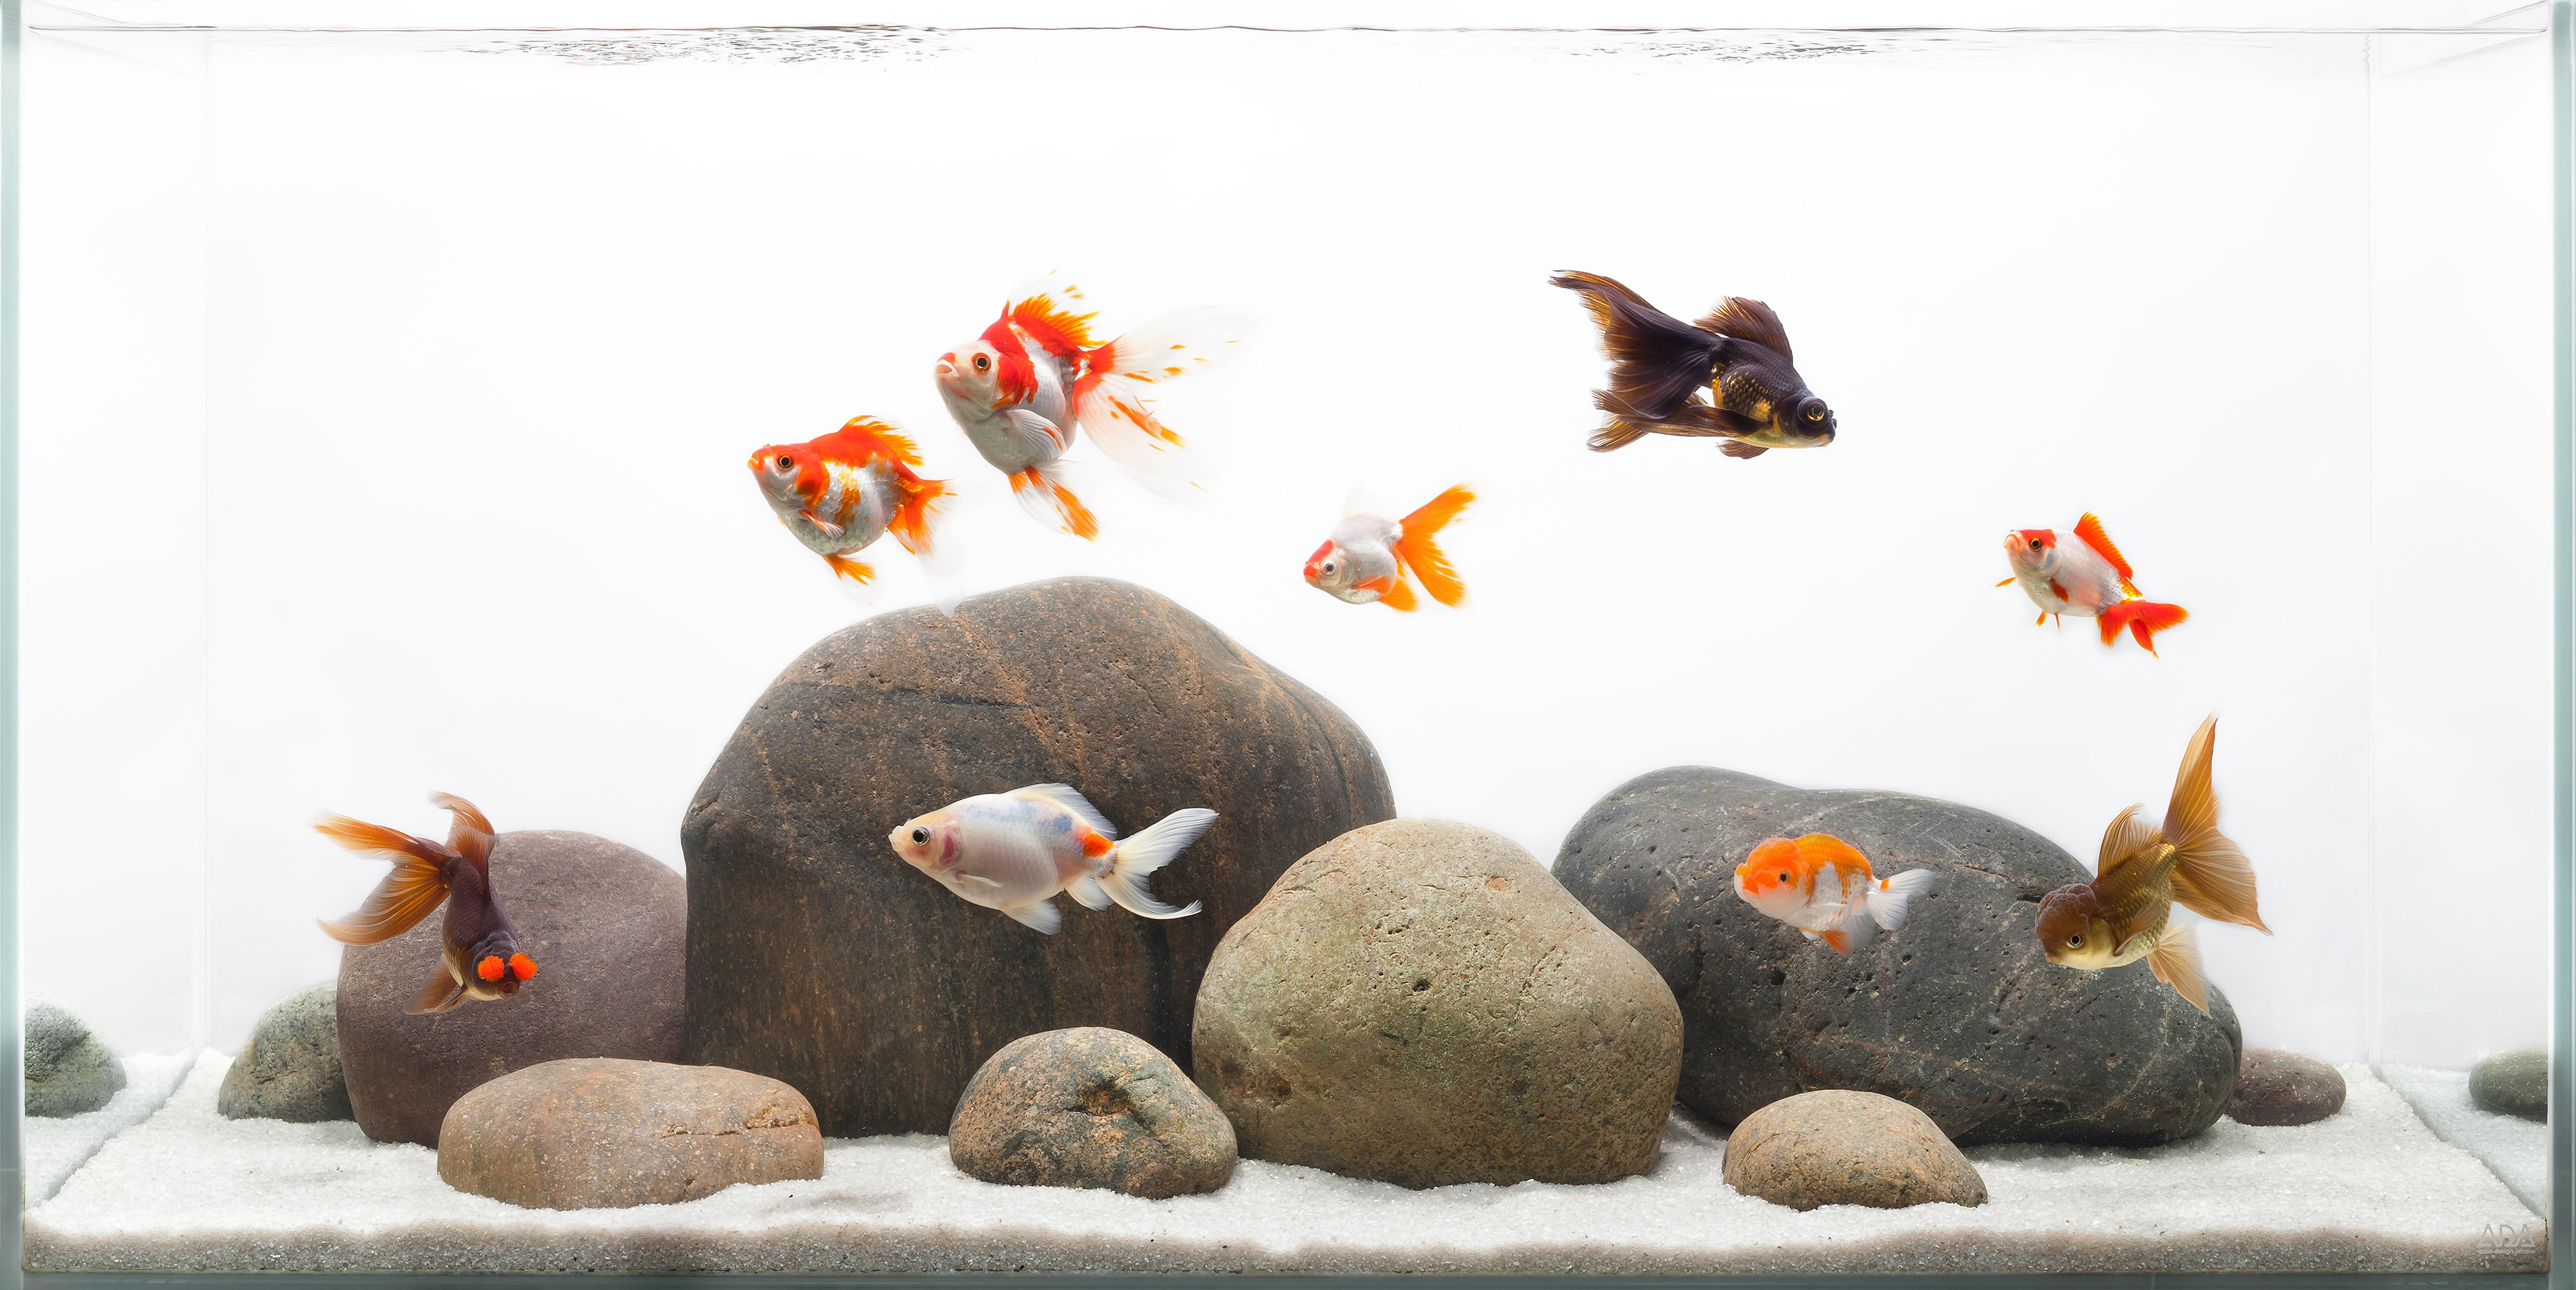 I love this goldfish aquascape Pretty gol s too my favourites